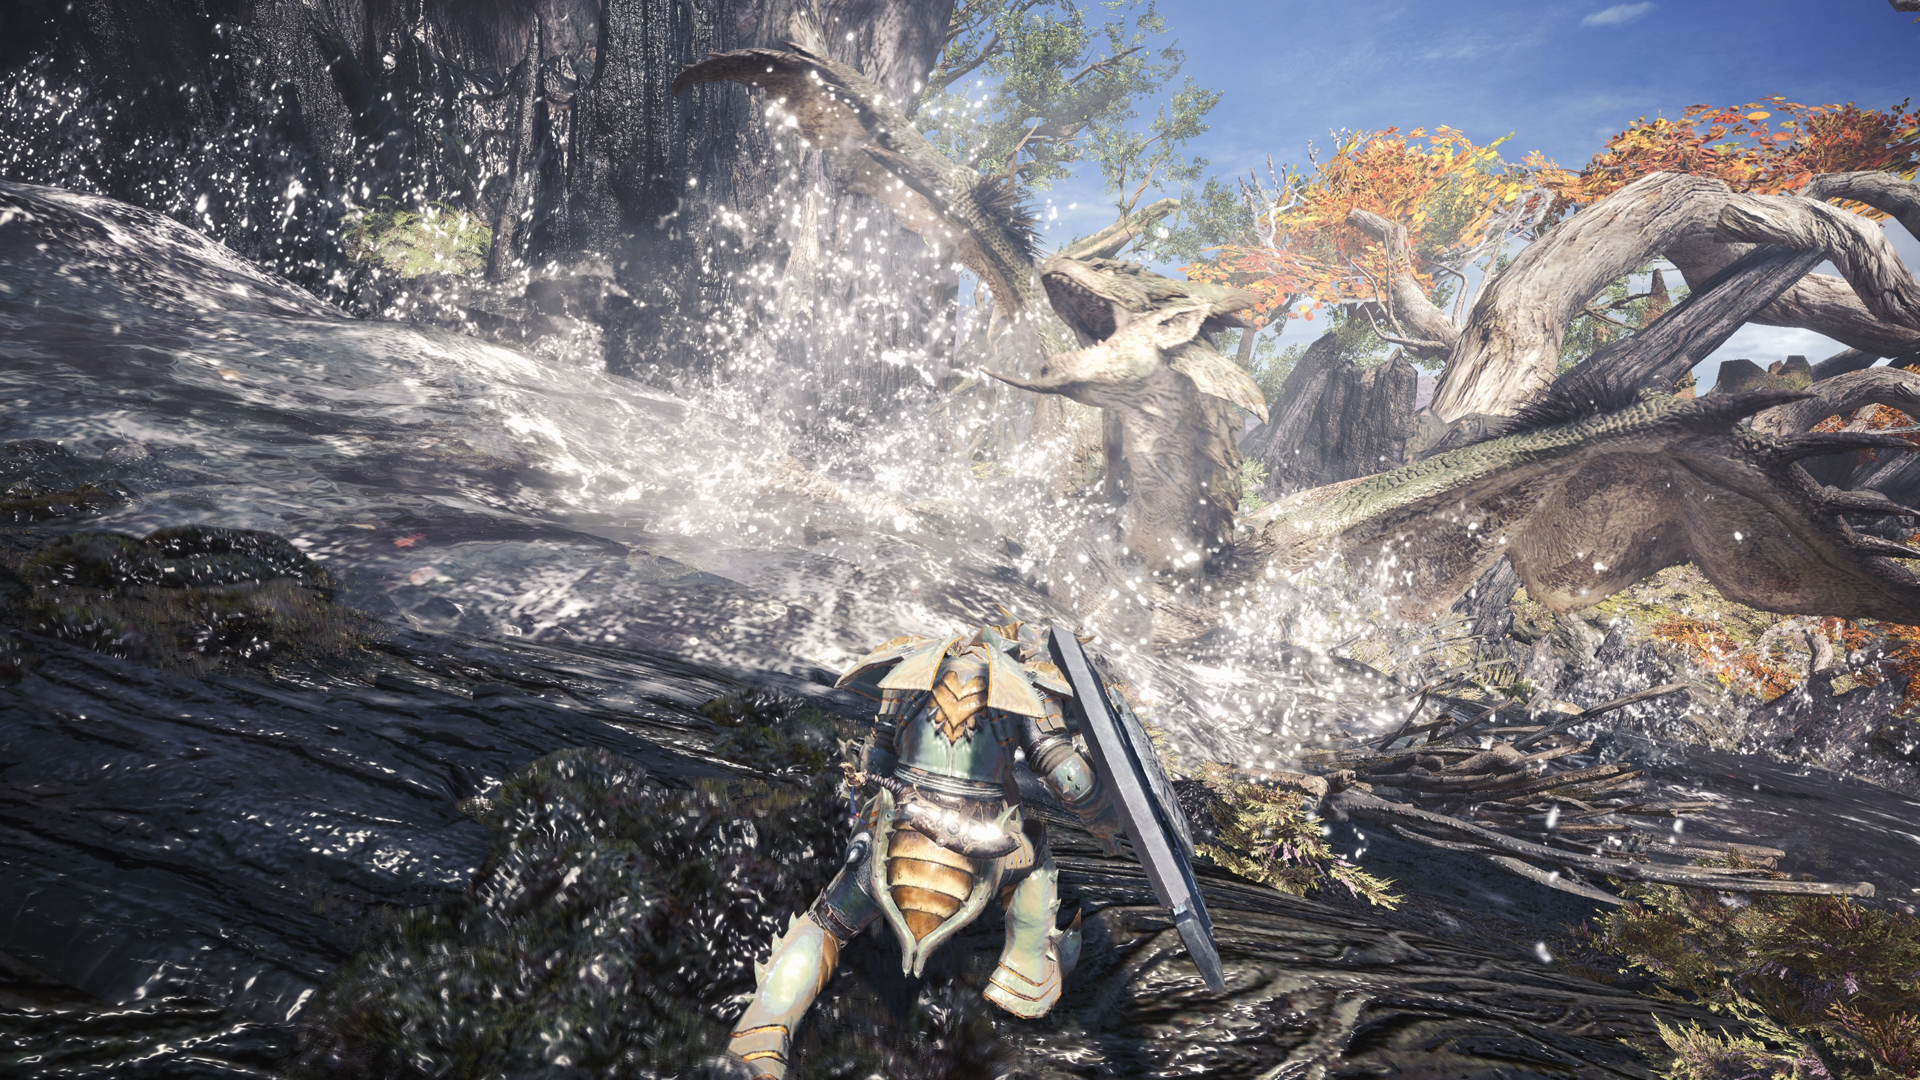 El anuncio de Monster Hunter: World para PC es agradable y decepcionante a la vez